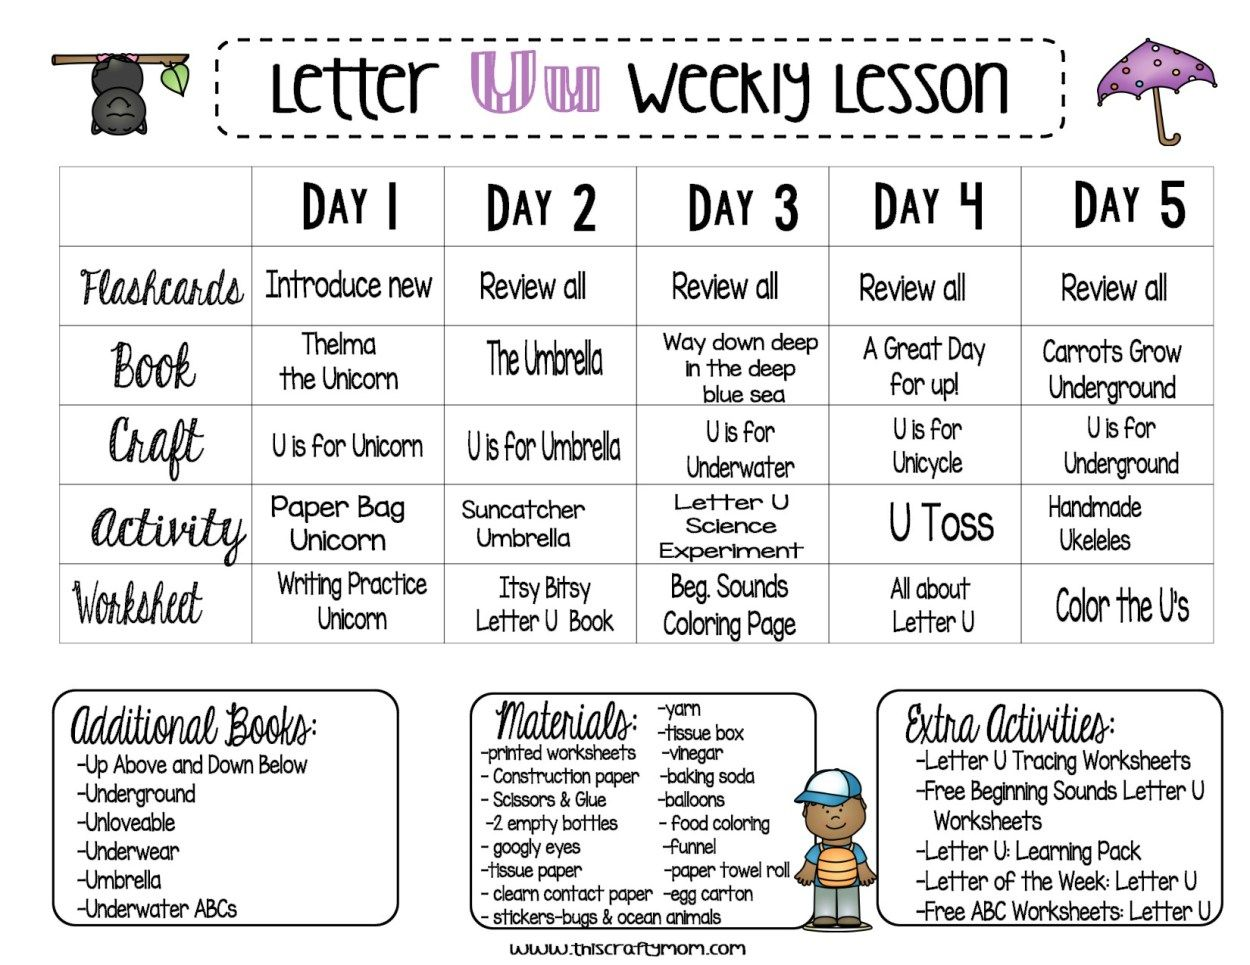 Letter U Free Preschool Weekly Lesson Plan Letter Of